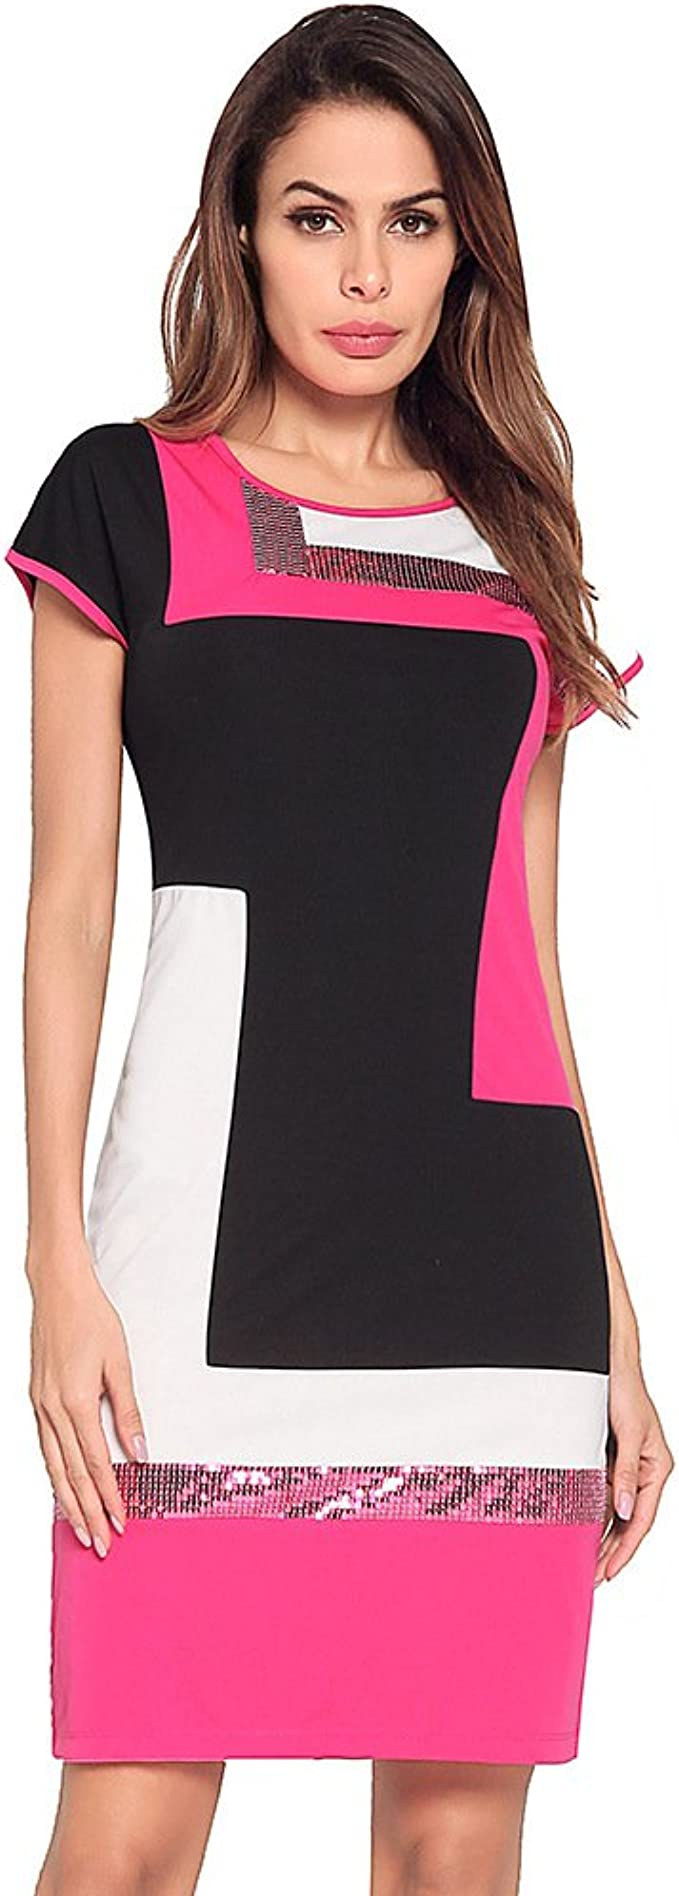 Mod Style Color Block Sequin Dress